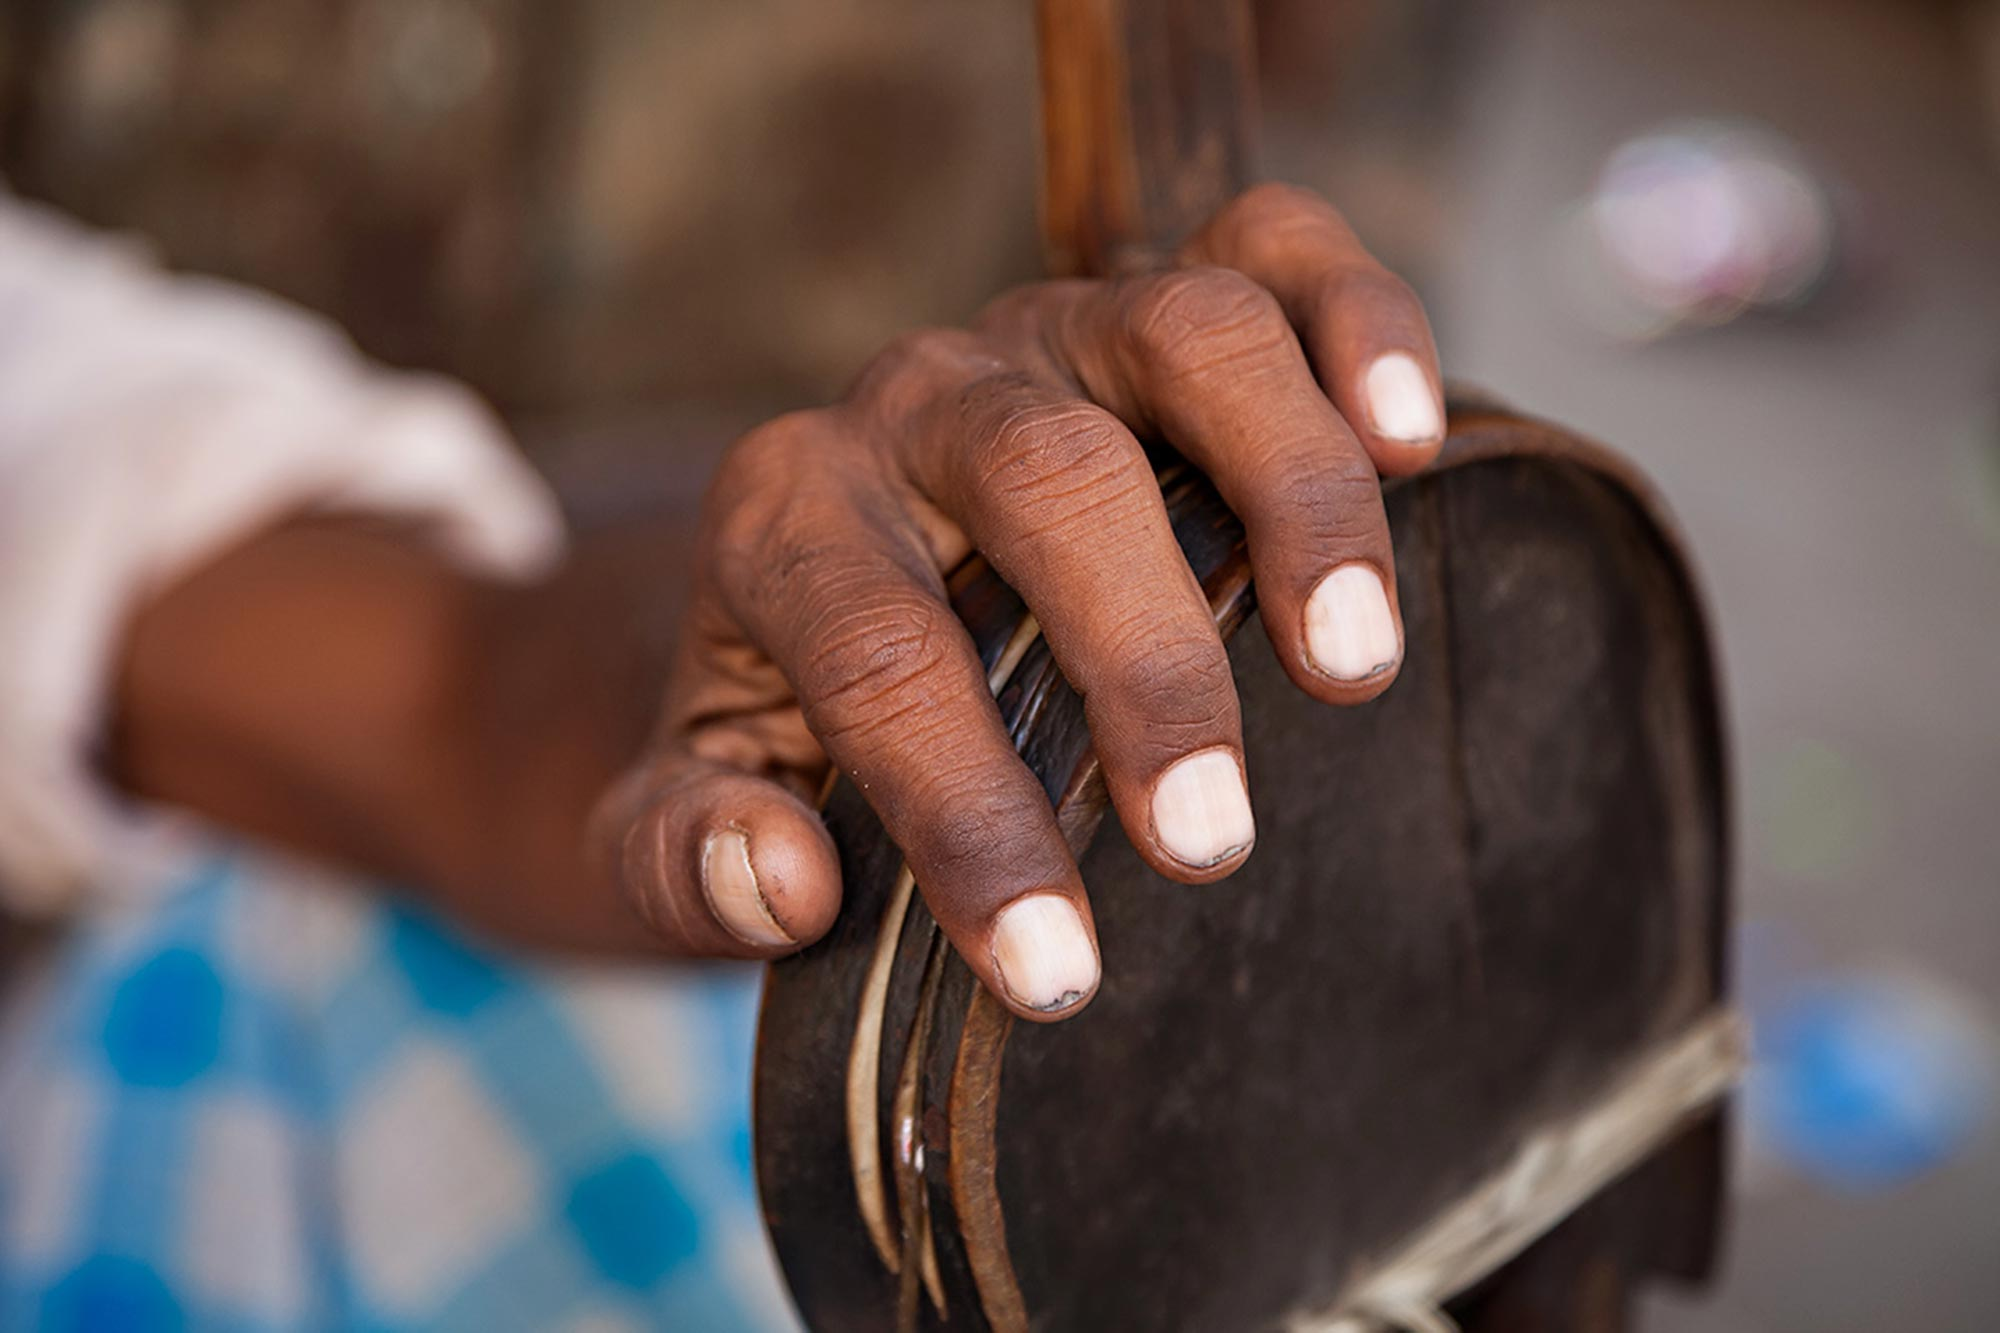 Hands of a craftsman in Kolkata, India. © Ulli Maier & Nisa Maier